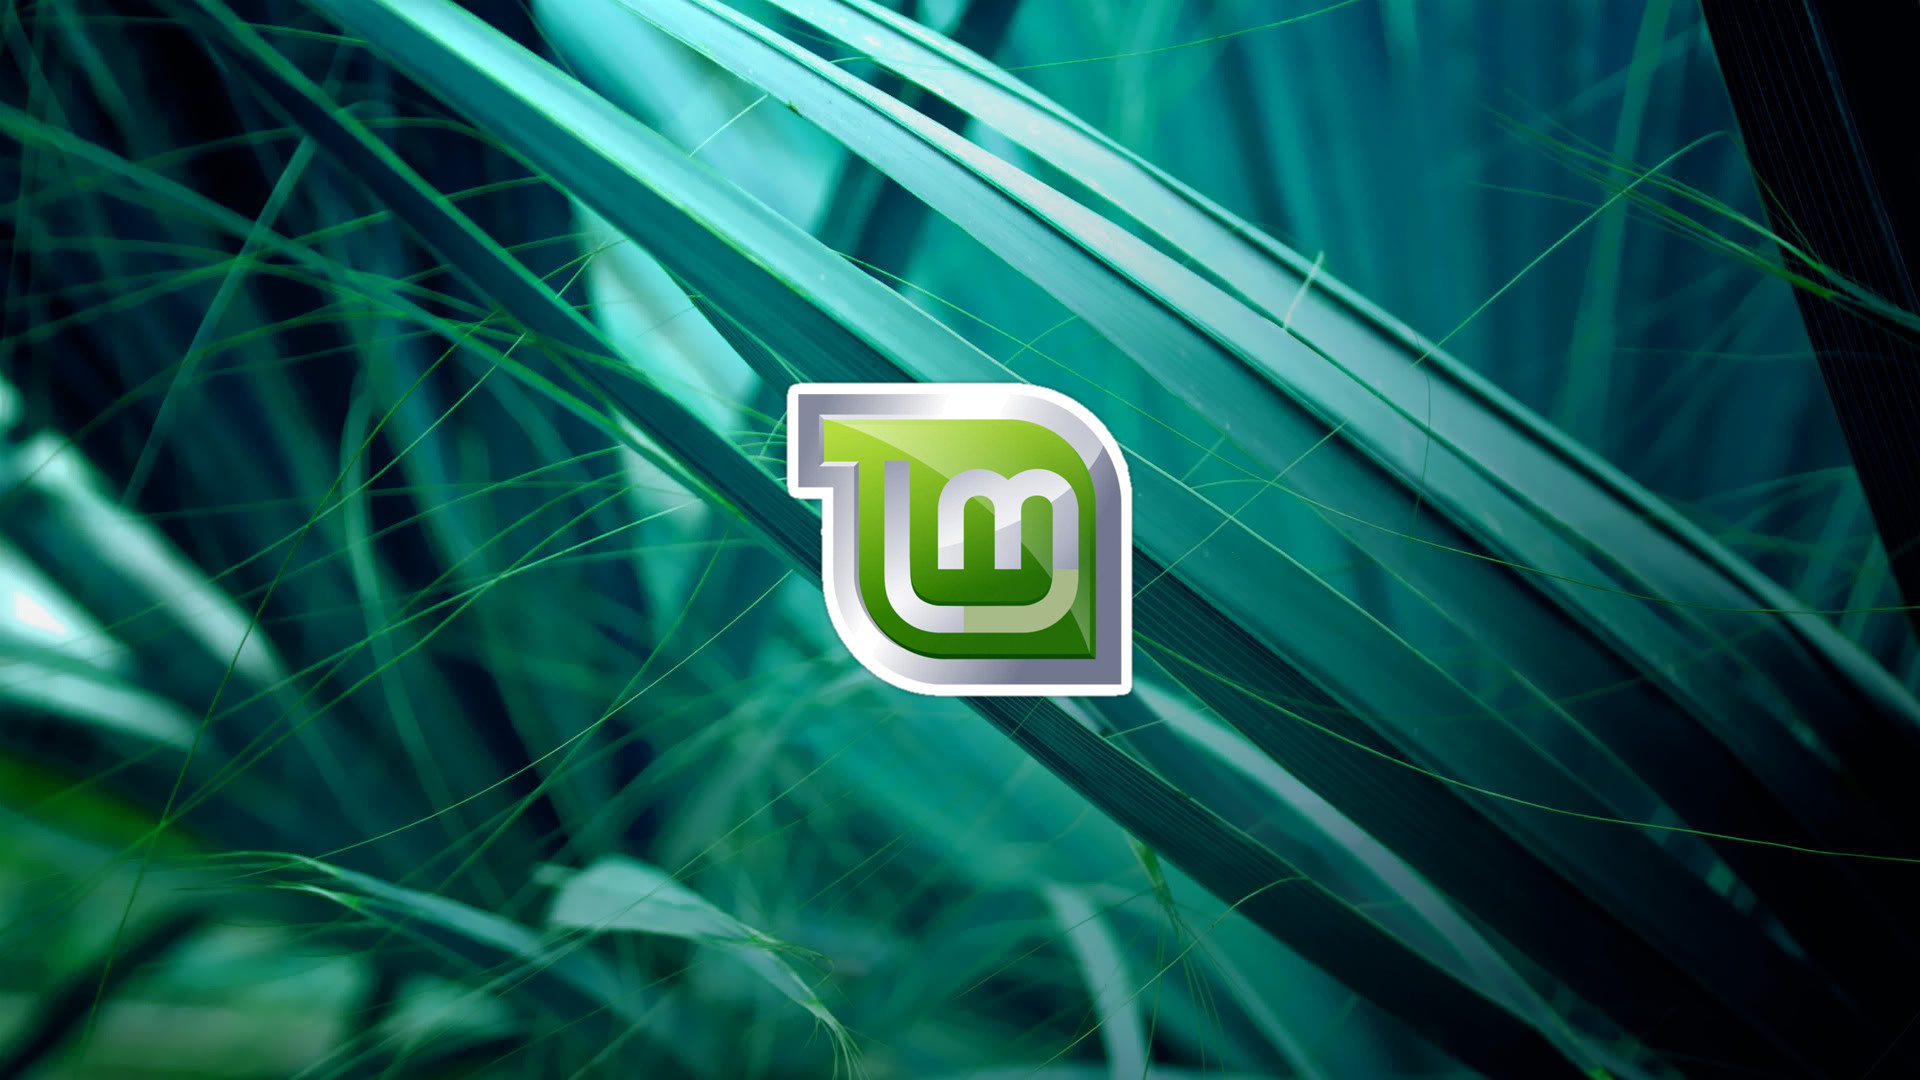 Linux Mint 13 Wallpaper by nightrampage Linux Mint 13 Wallpaper by  nightrampage